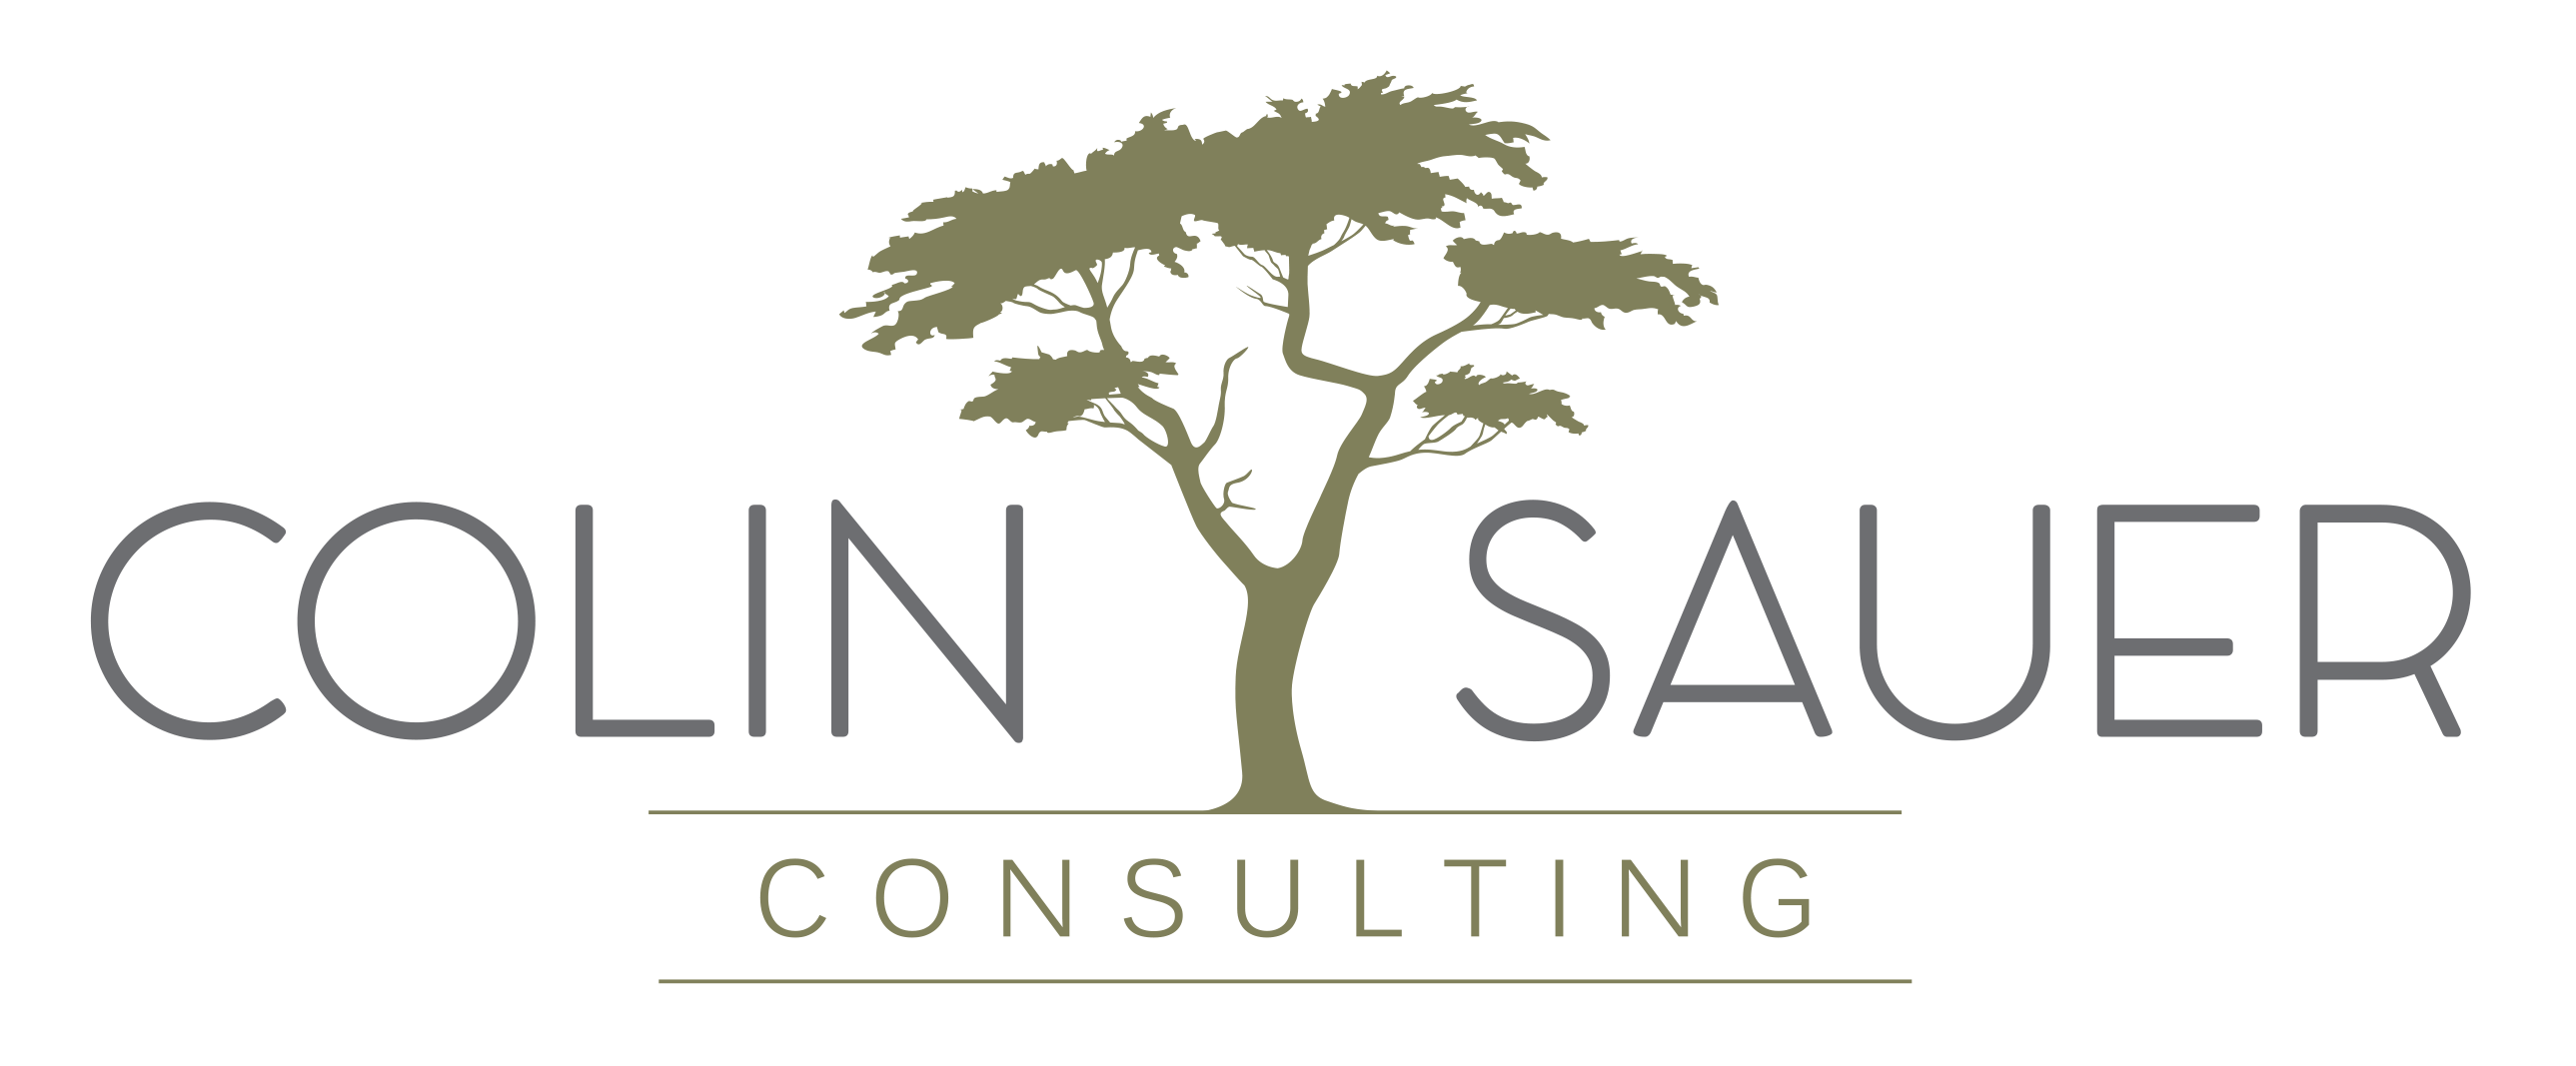 Colin-Sauer-Consulting